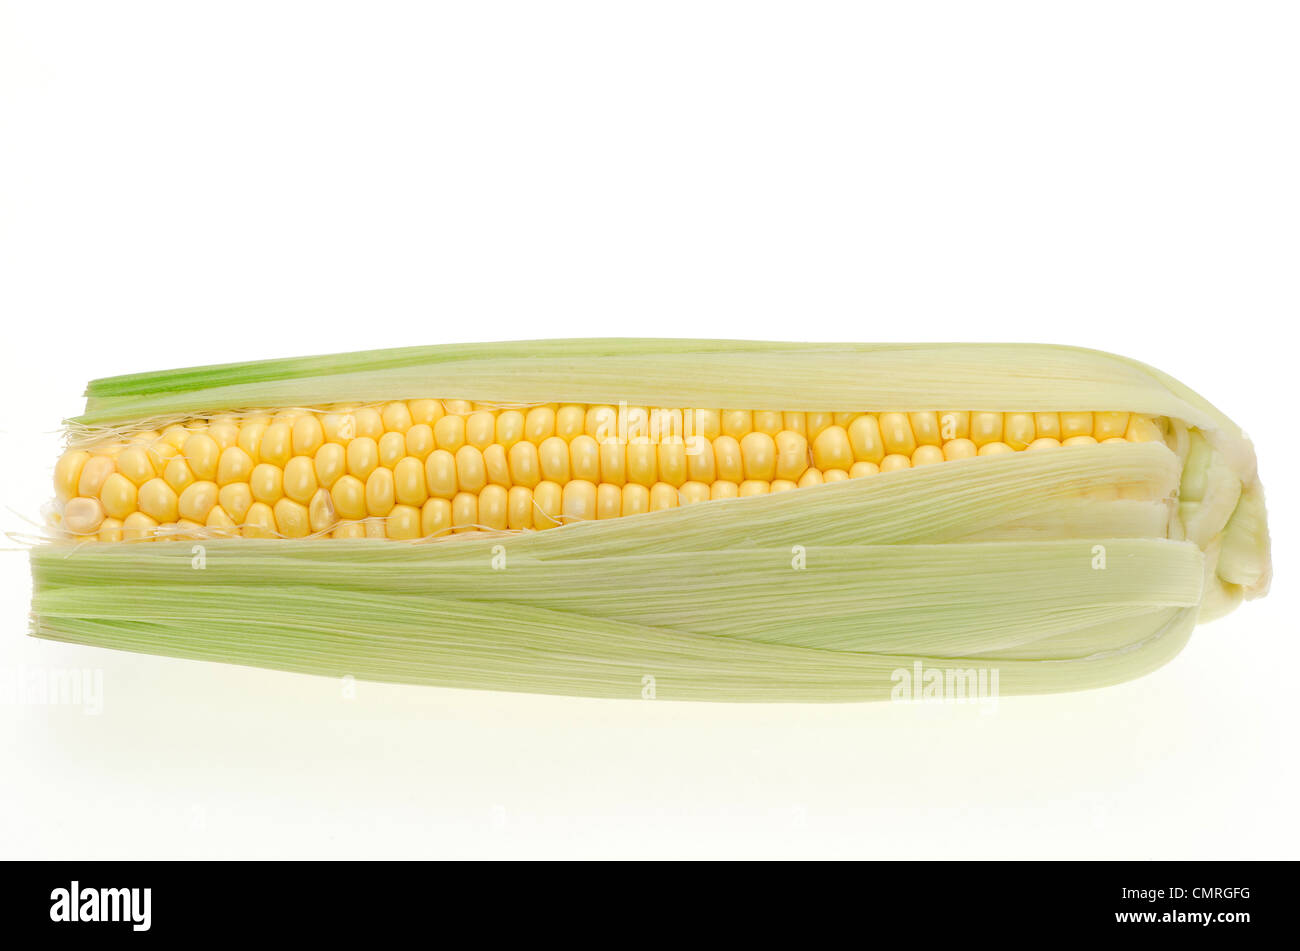 Fresh corn ears or sweetcorn shot in the studio with a white background - Stock Image